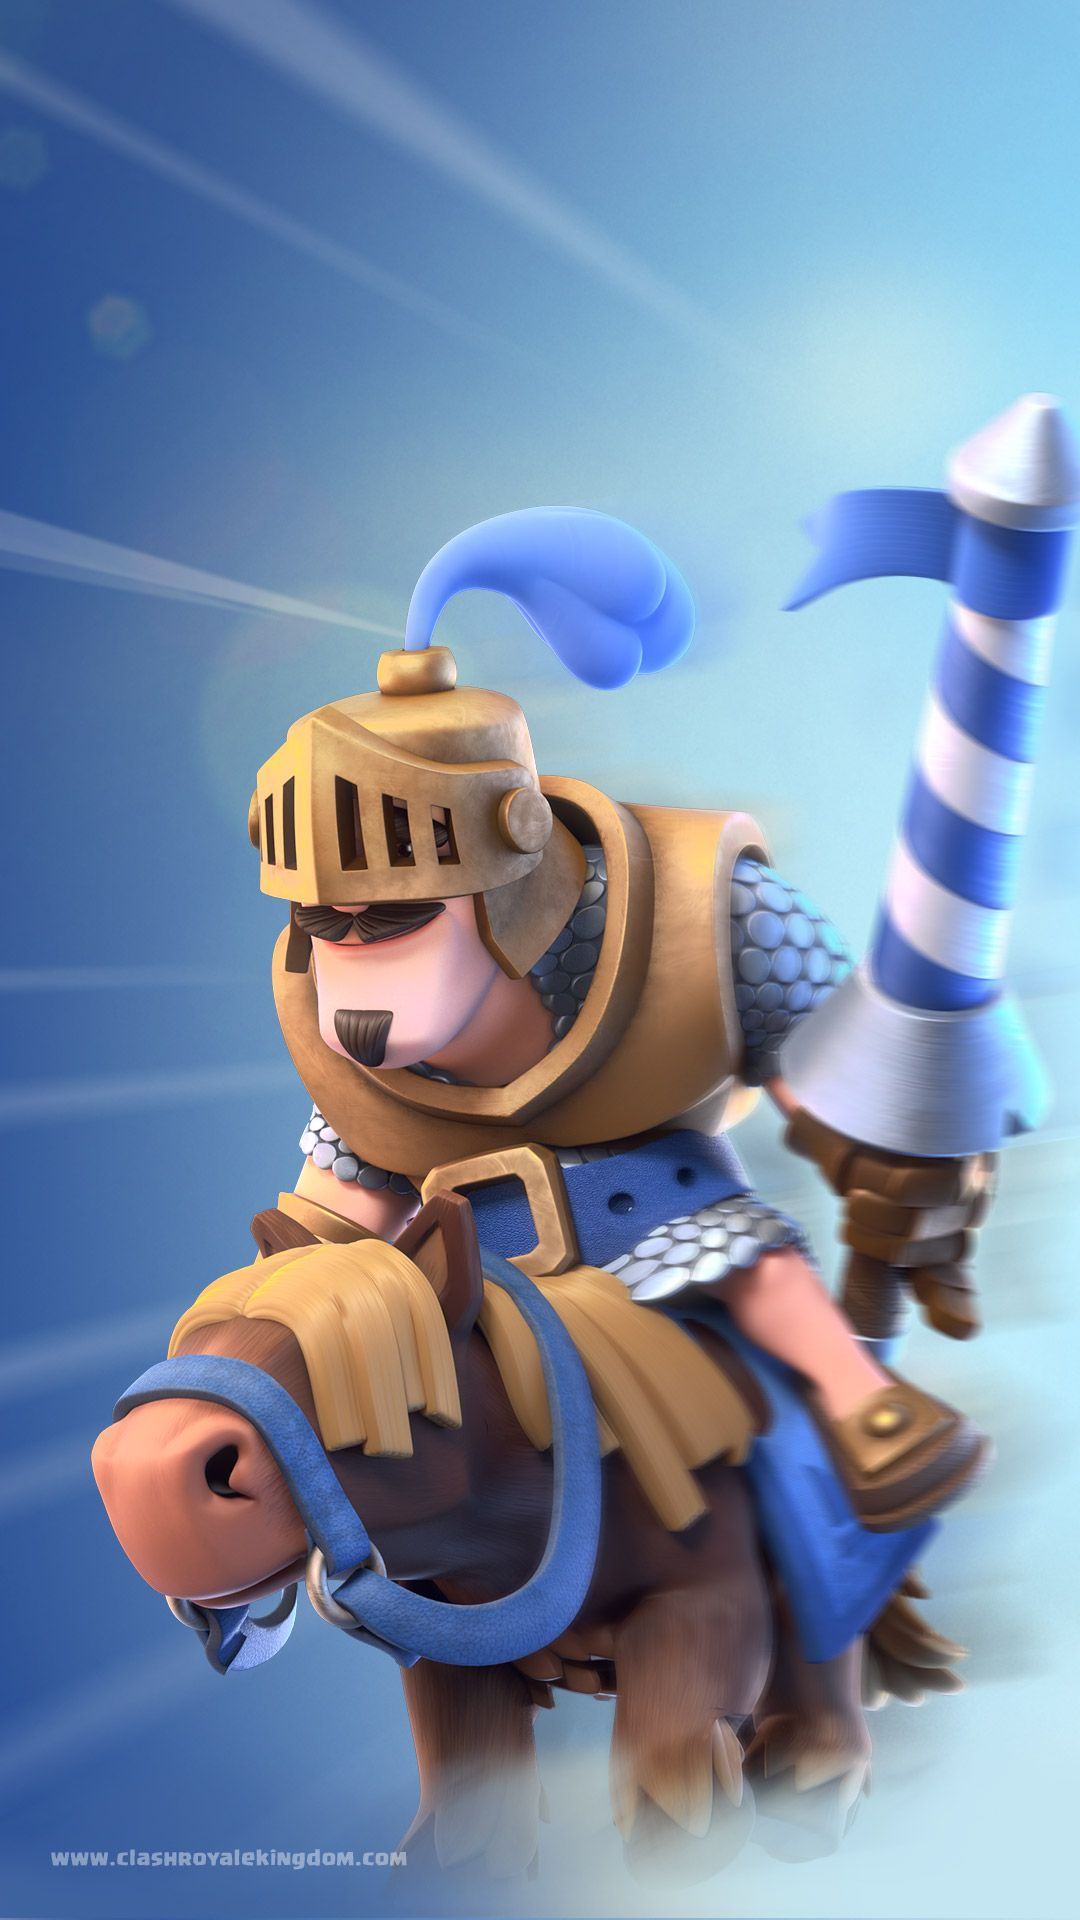 Clash royale wallpaper -- CHARGED PRINCE | Clash royale ...